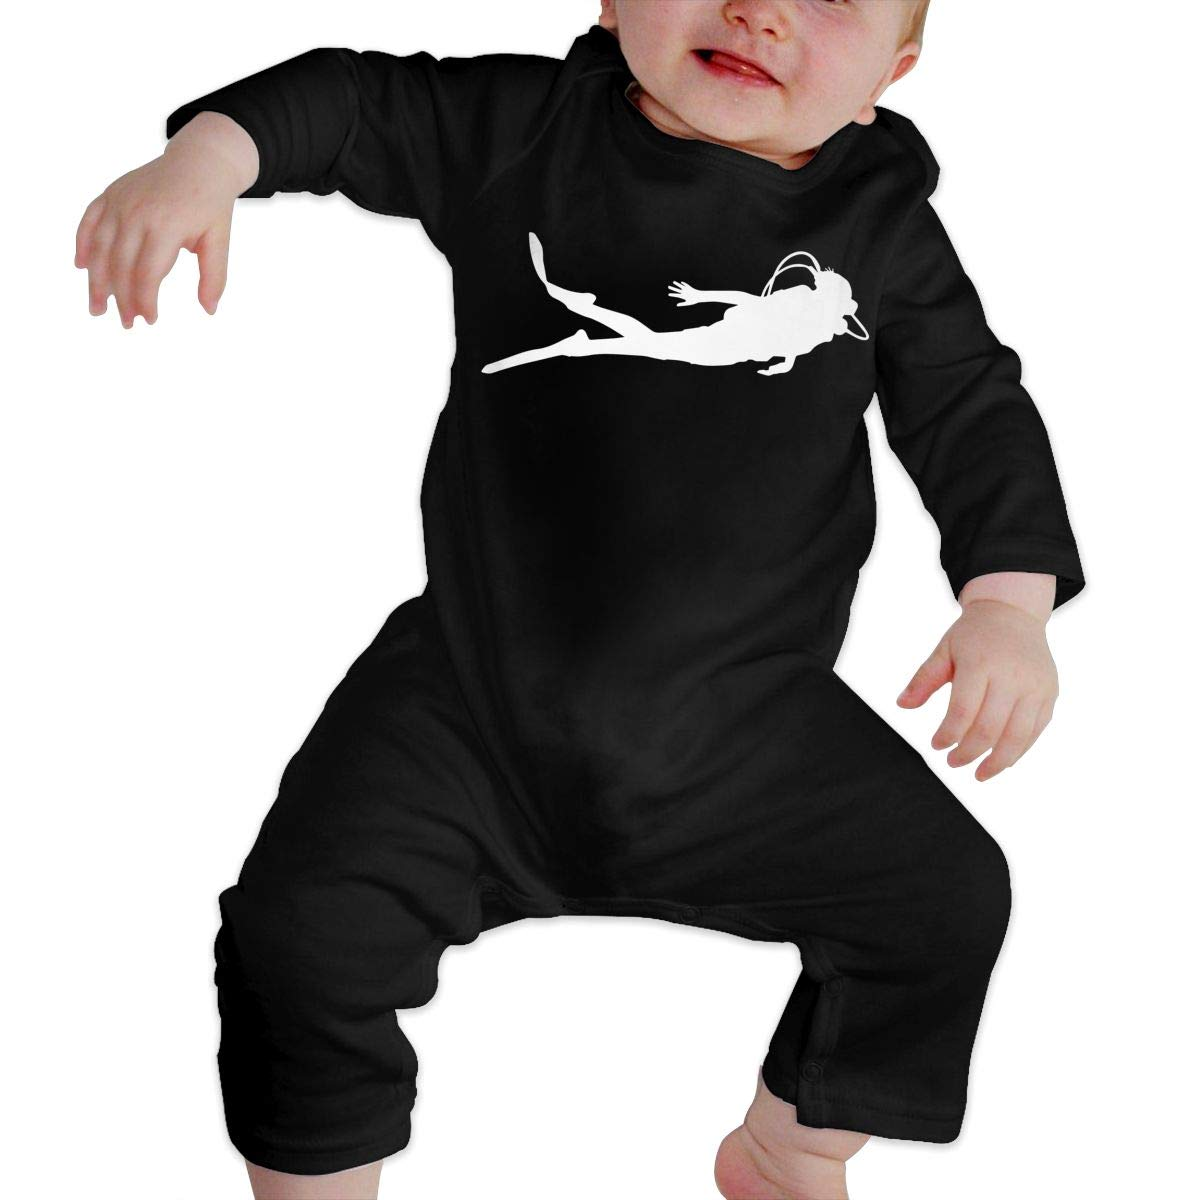 A1BY-5US Infant Babys Cotton Long Sleeve Scuba Diver-1 Climb Jumpsuit Funny Printed Romper Clothes